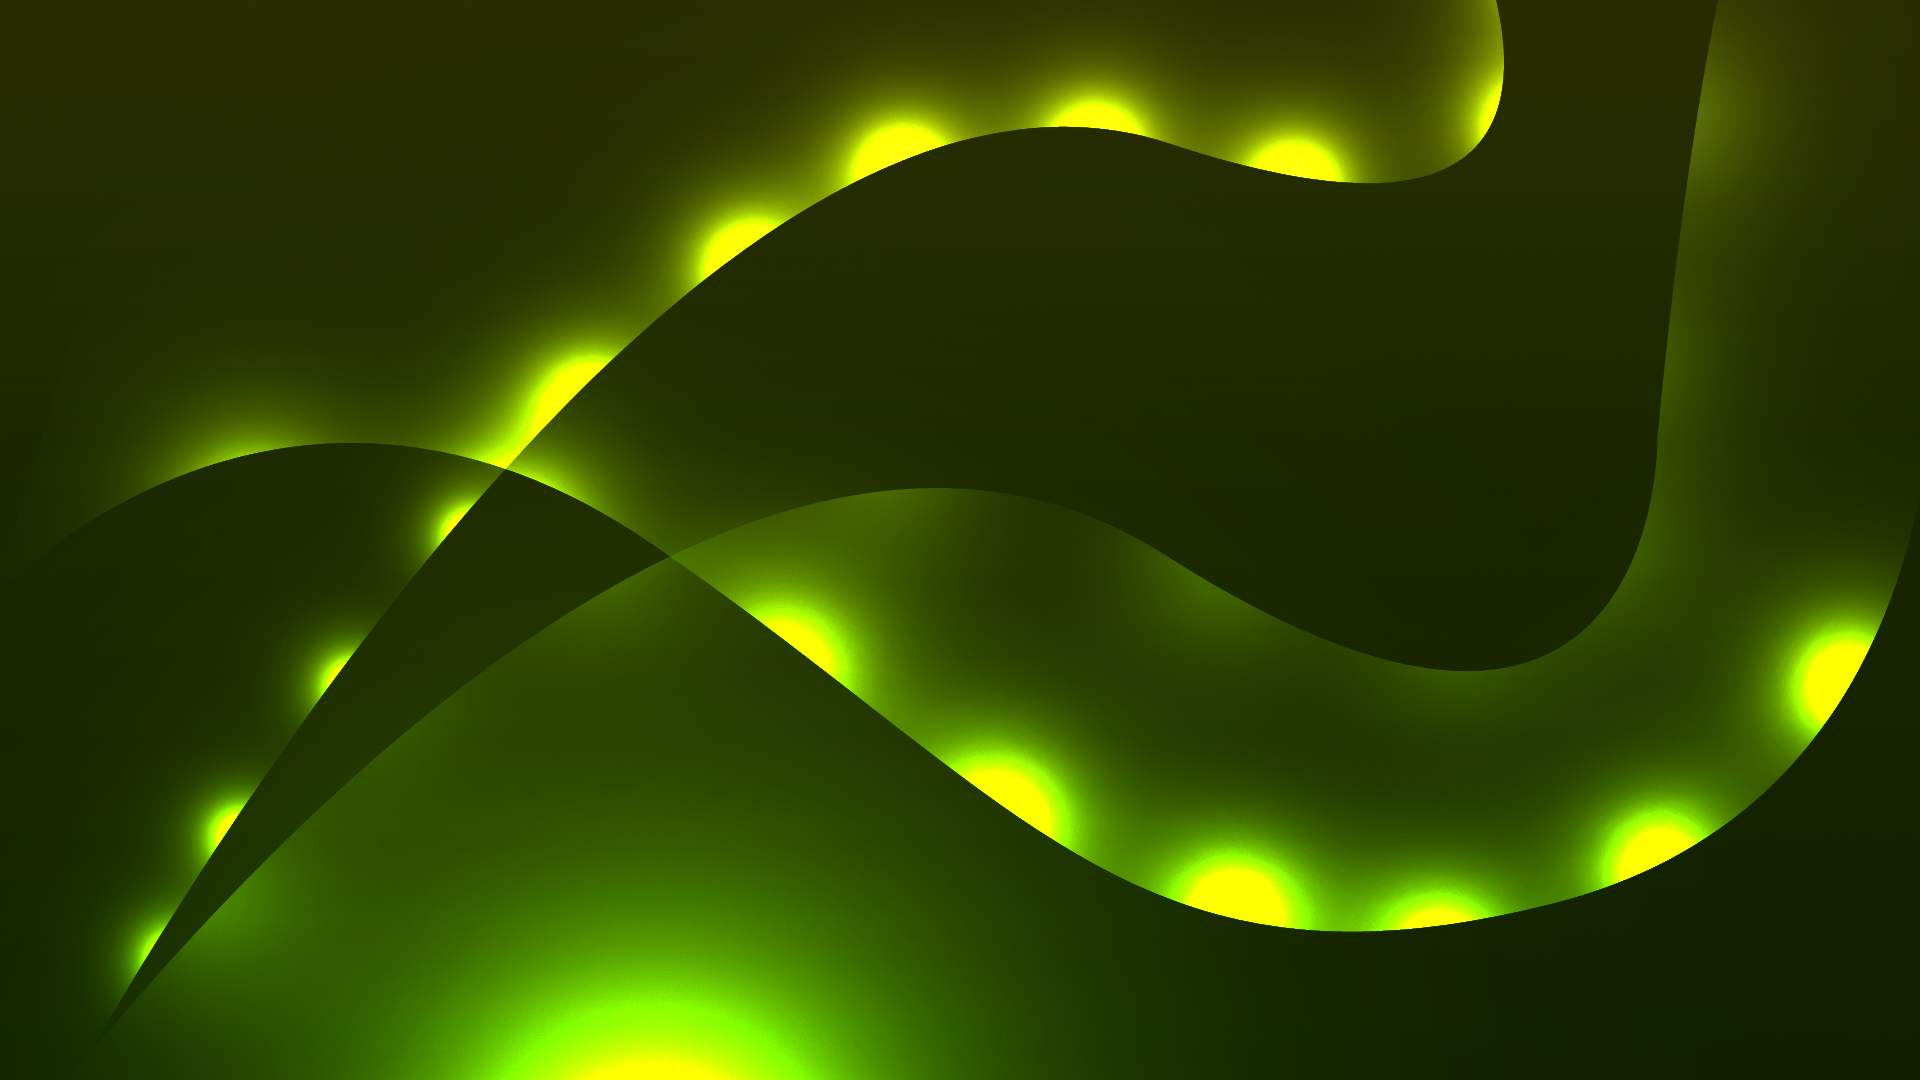 [50+] Green Abstract Wallpaper on WallpaperSafariGreen Abstract Wallpaper